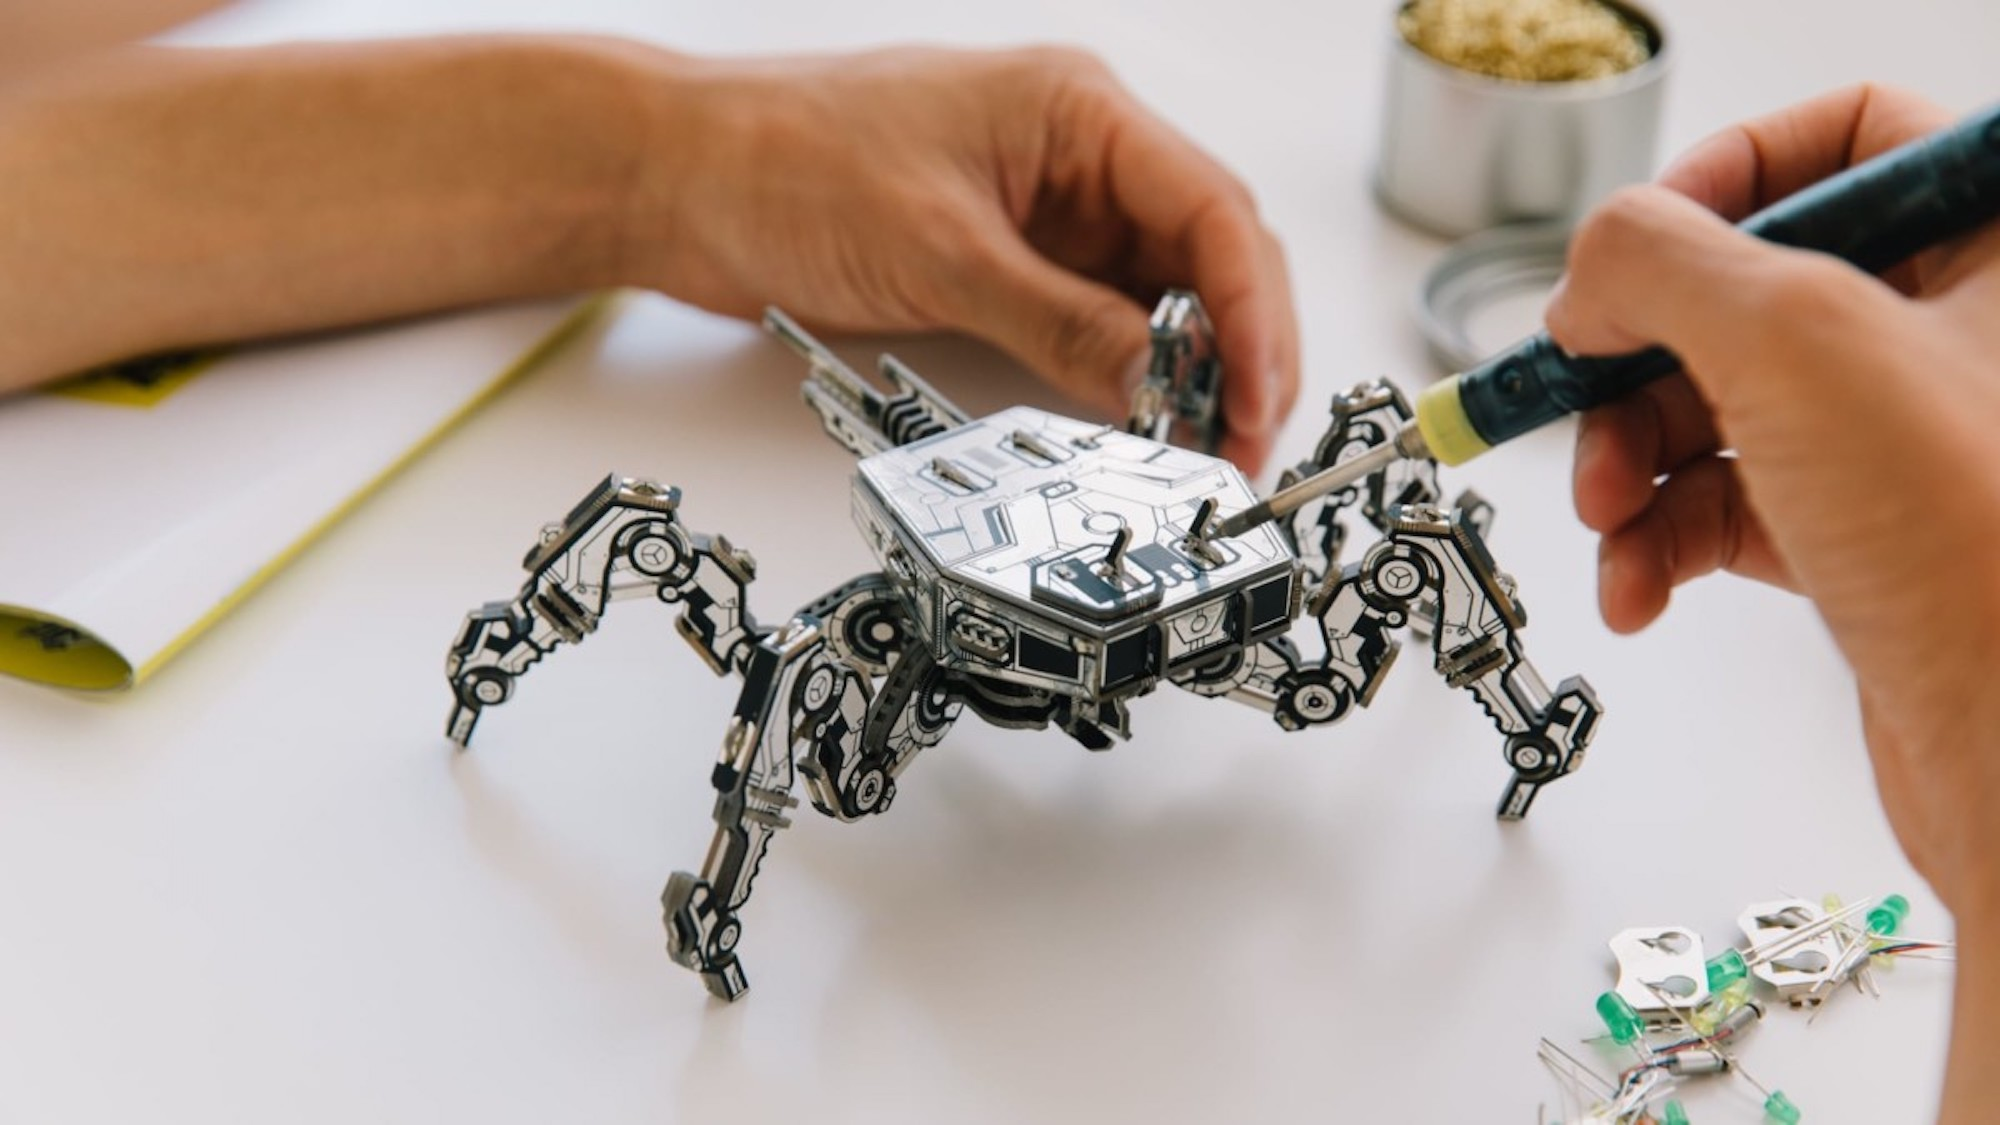 These cool circuit board sets are great for budding engineers